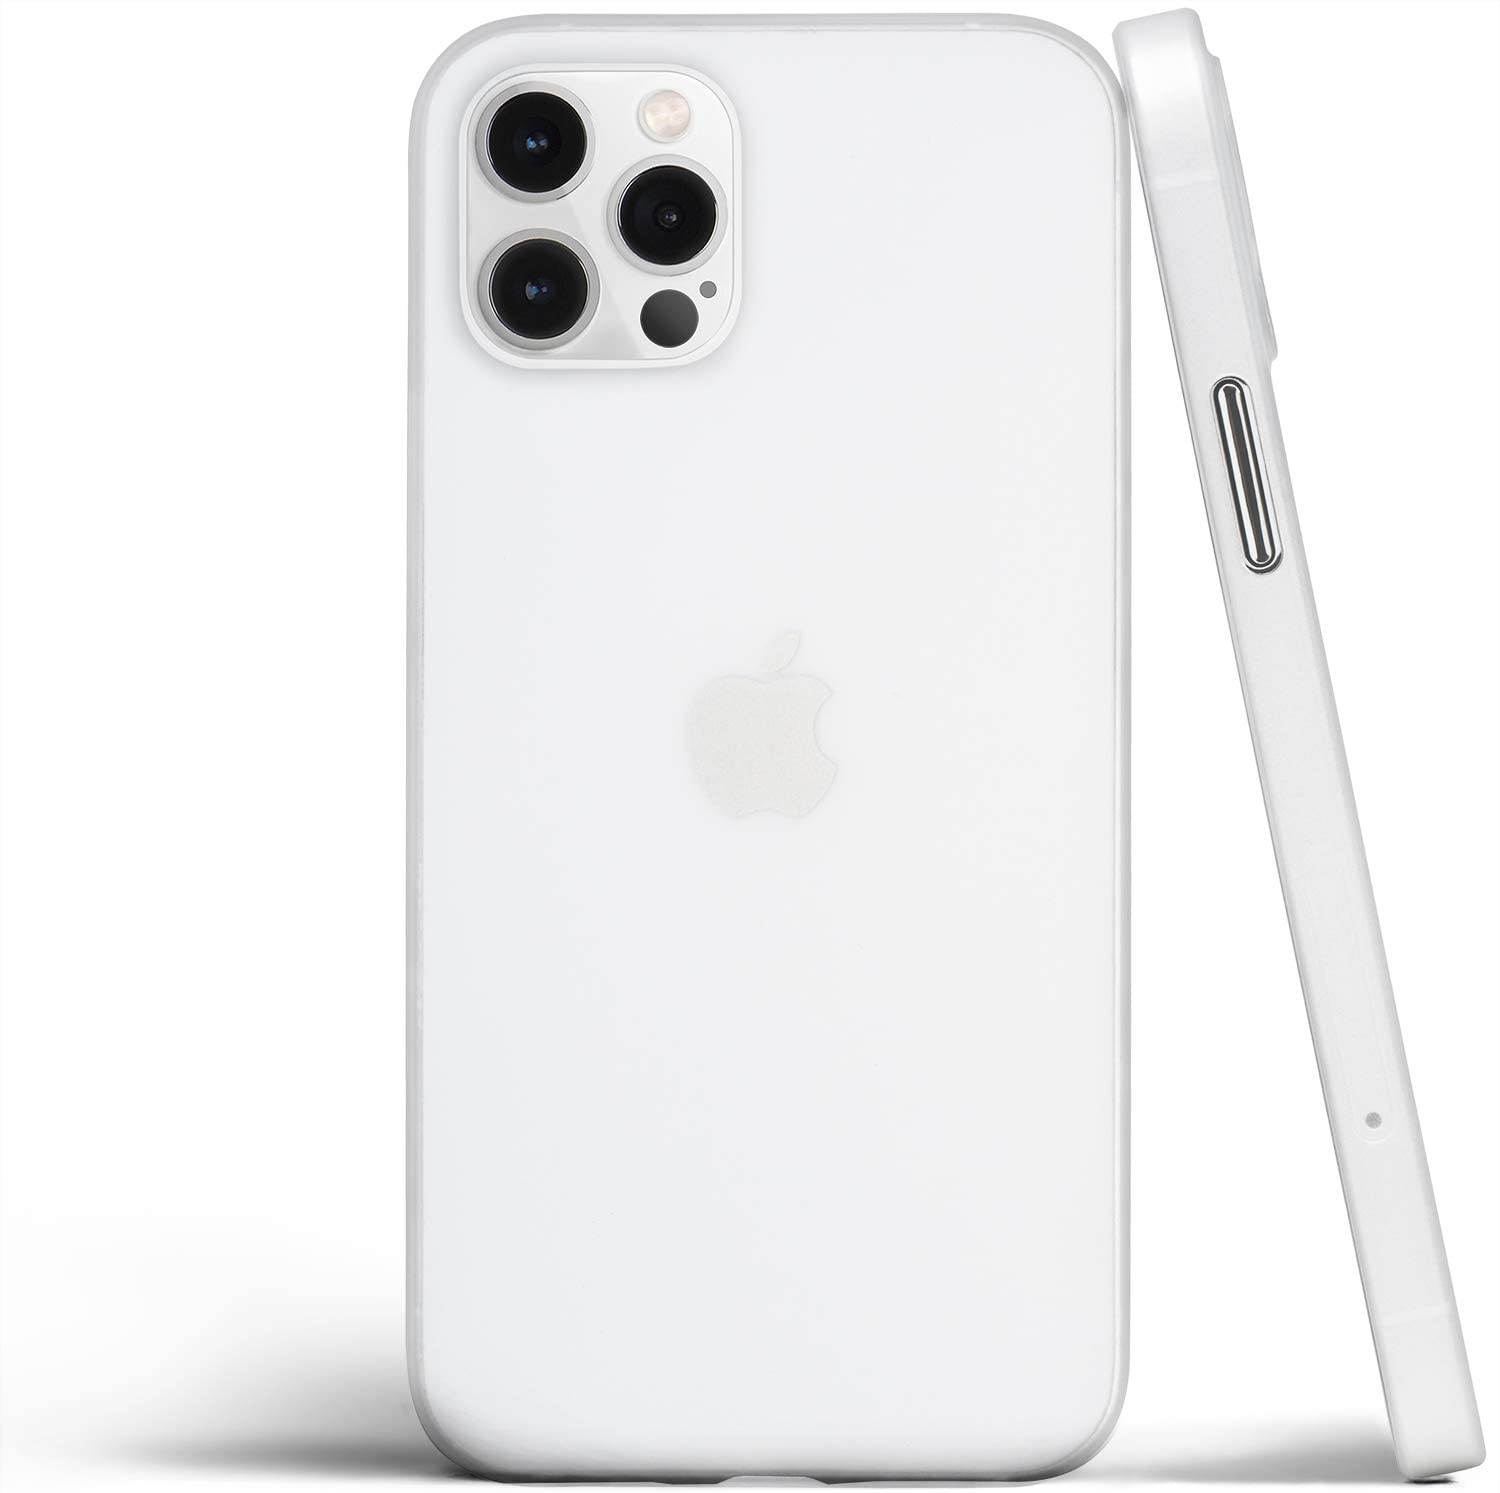 best ultra-thin cases for iPhone 12